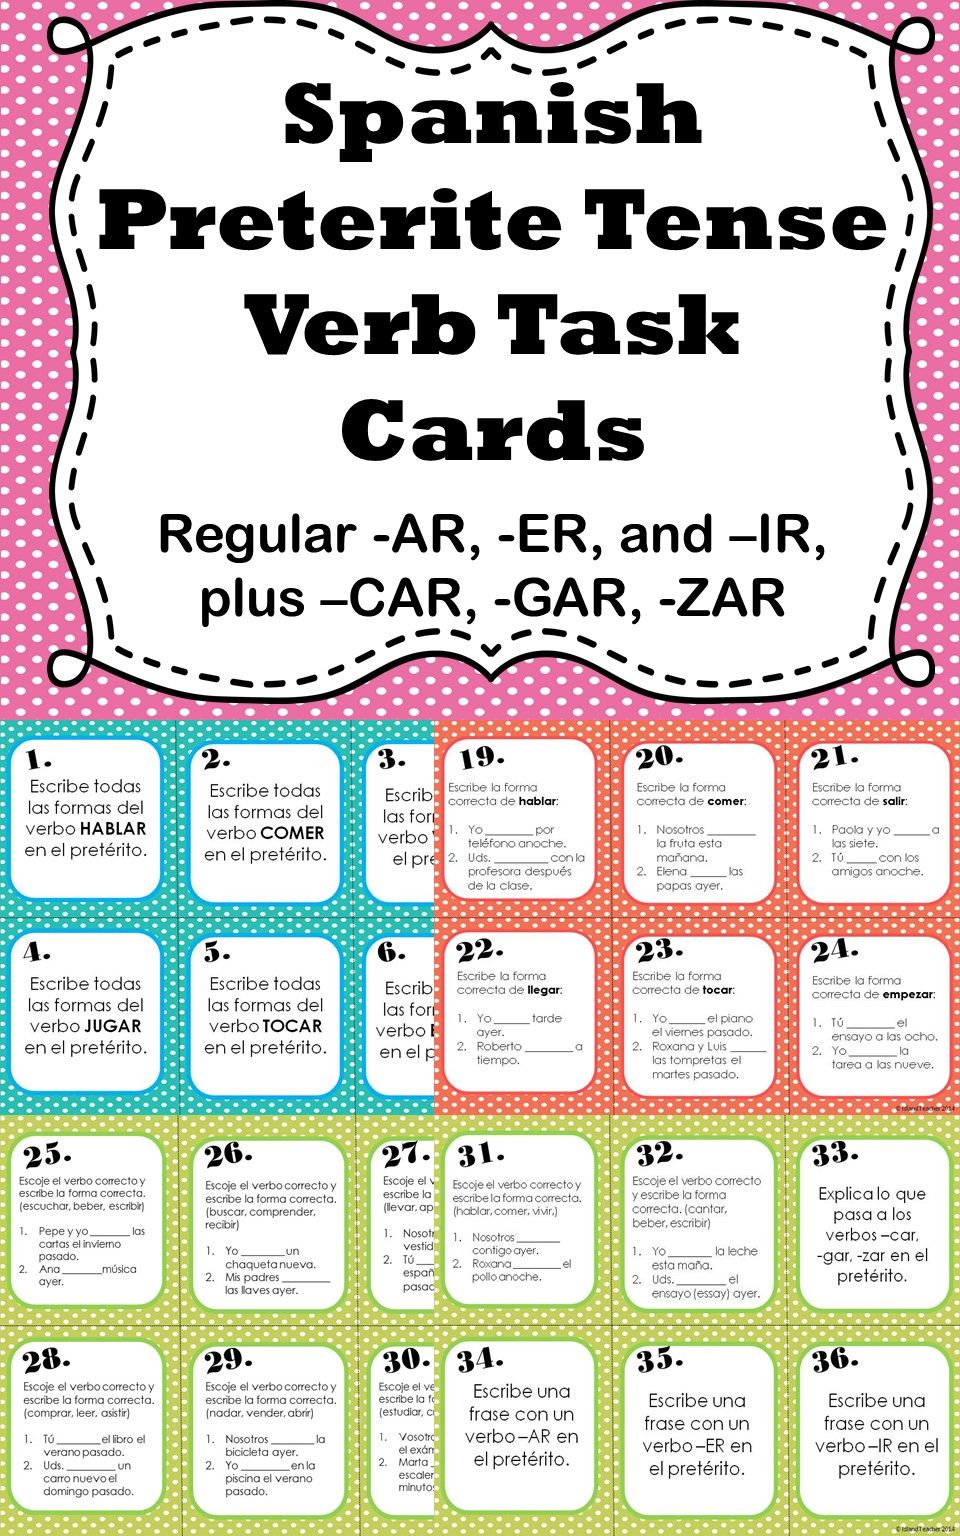 Task Cards To Practice Conjugating All Forms Of Preterite Tense Regular Verbs Ar Er And Ir Also Incl Preterite Tense Spanish Classroom Teaching Spanish [ 1536 x 960 Pixel ]